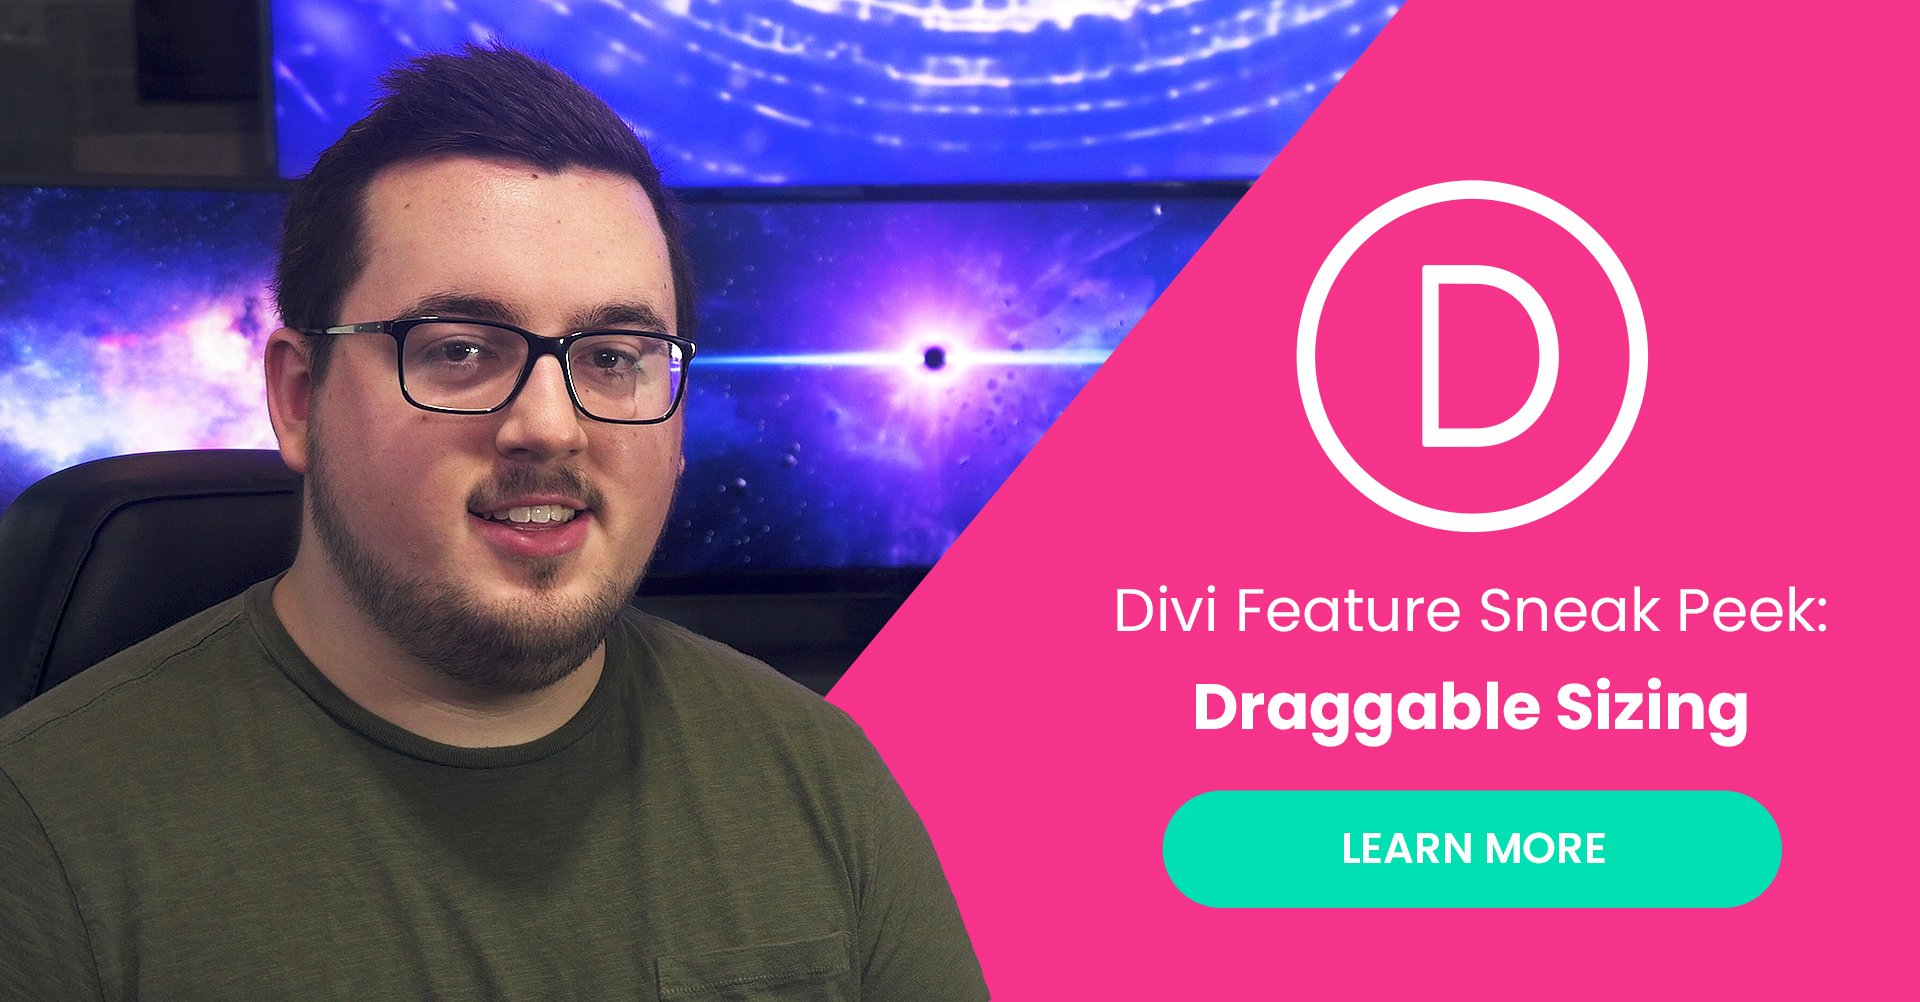 Divi Feature Sneak Peek: Draggable Sizing + More Sizing Options